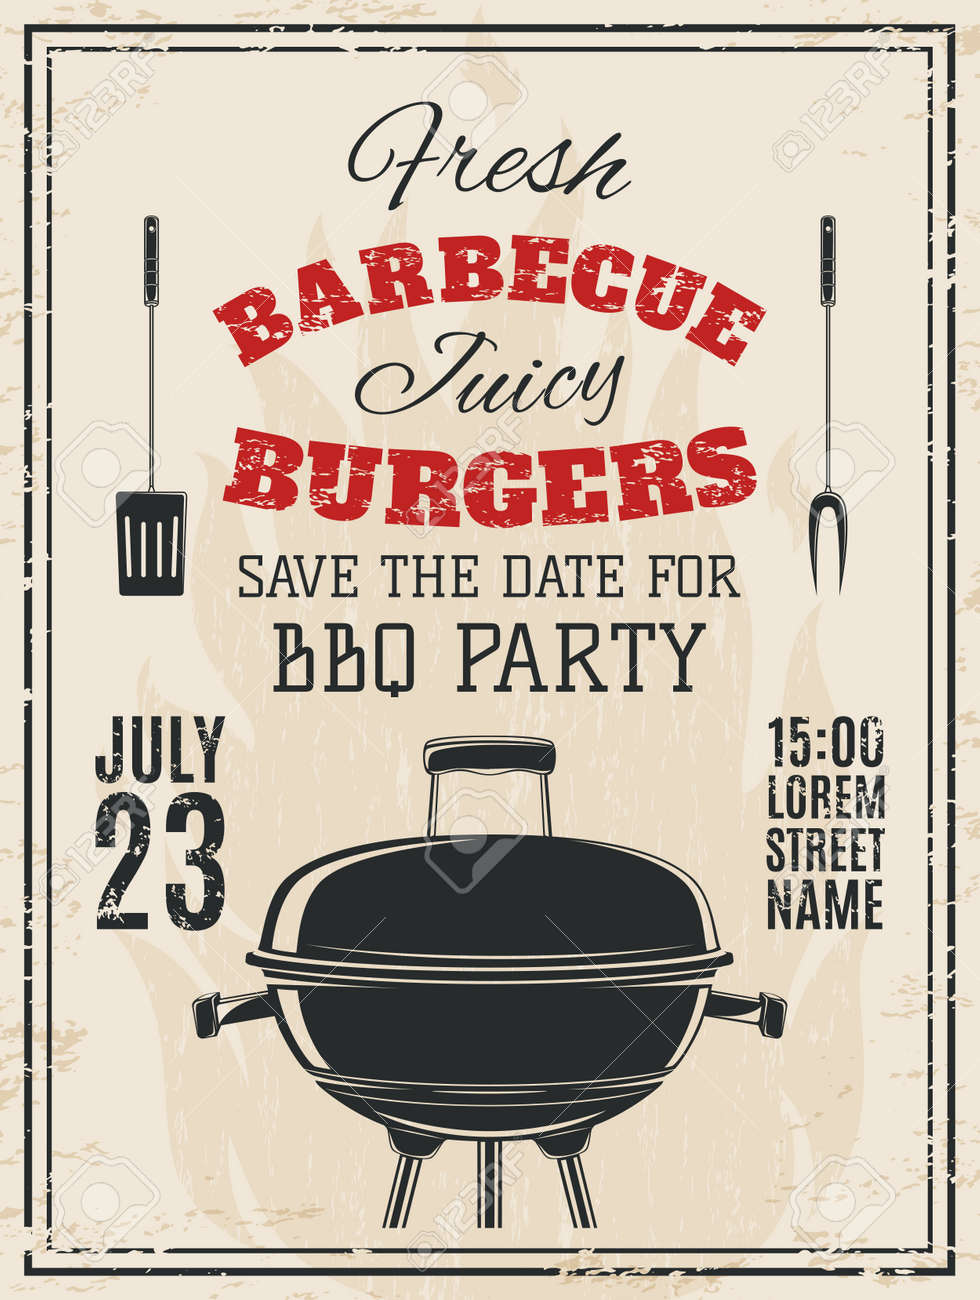 Vintage Barbecue Party Invitation Food Flyer Template Vector - Save the date flyer template